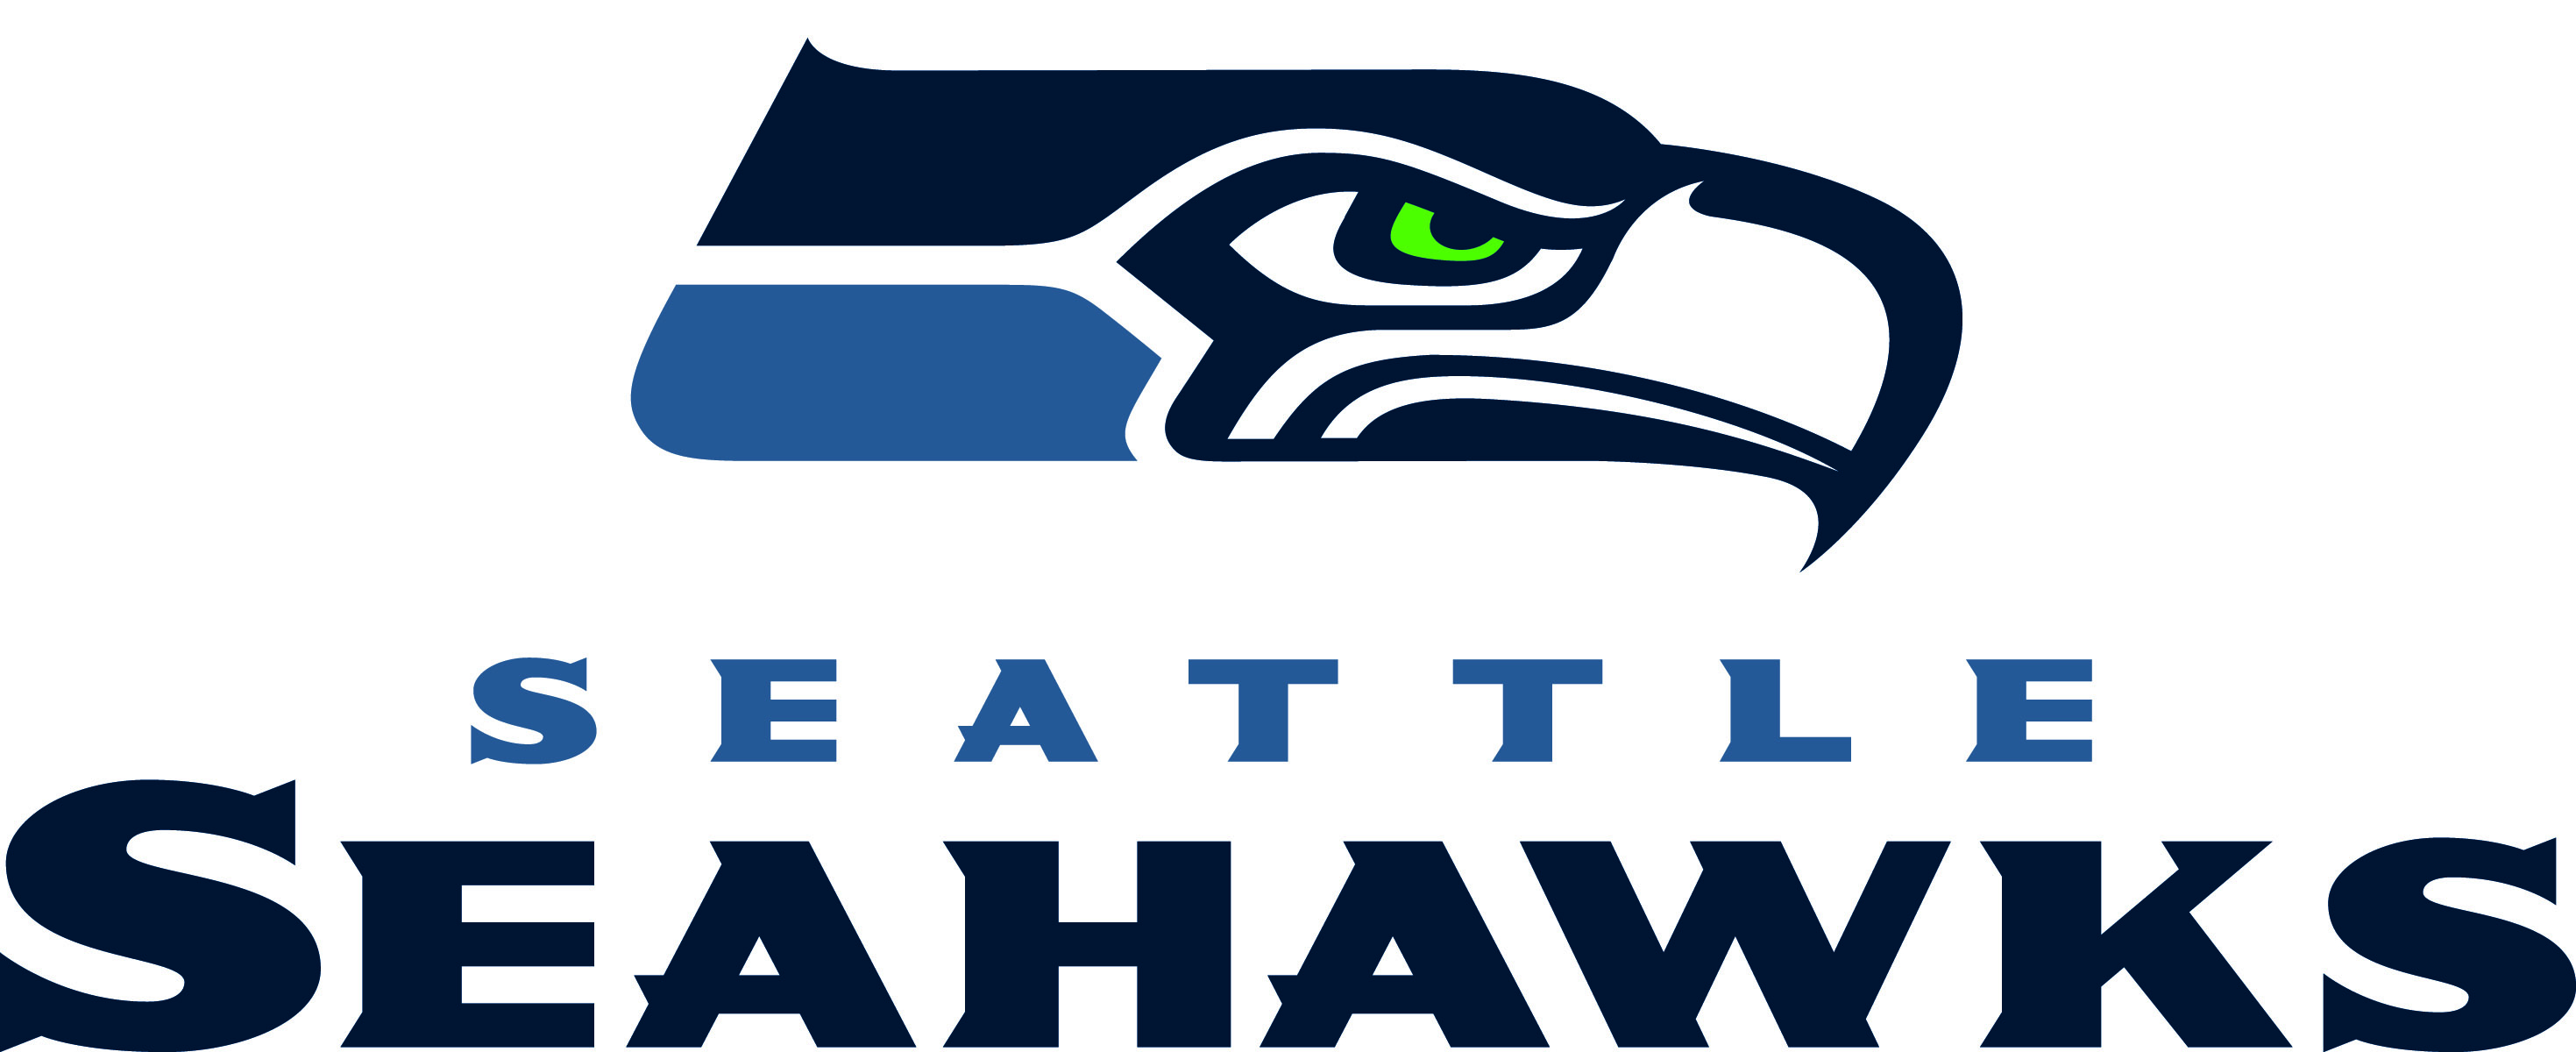 graphic relating to Printable Seahawks Logo known as Seattle Seahawks Printable Emblem cost-free impression